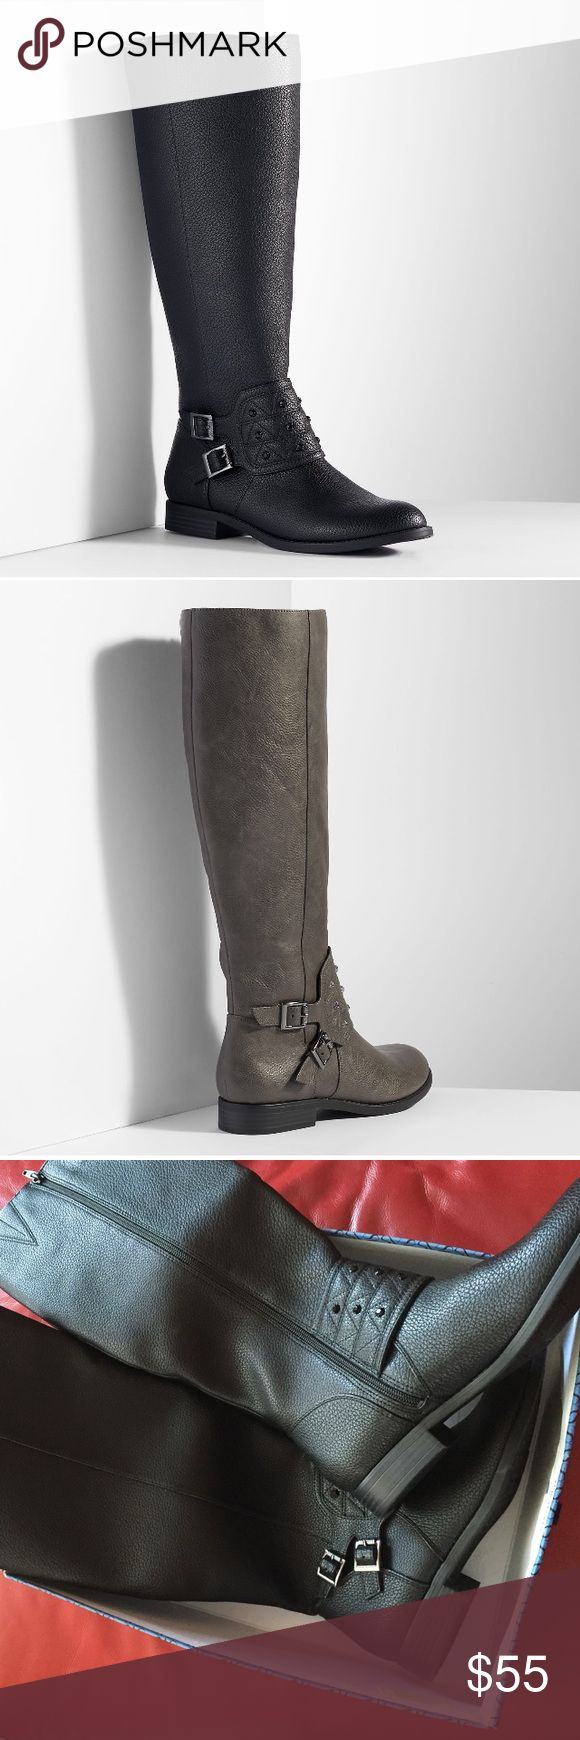 Simply Vera wang riding boots Nice leather boots Simply Vera Vera Wang Shoes Over the Knee Boots